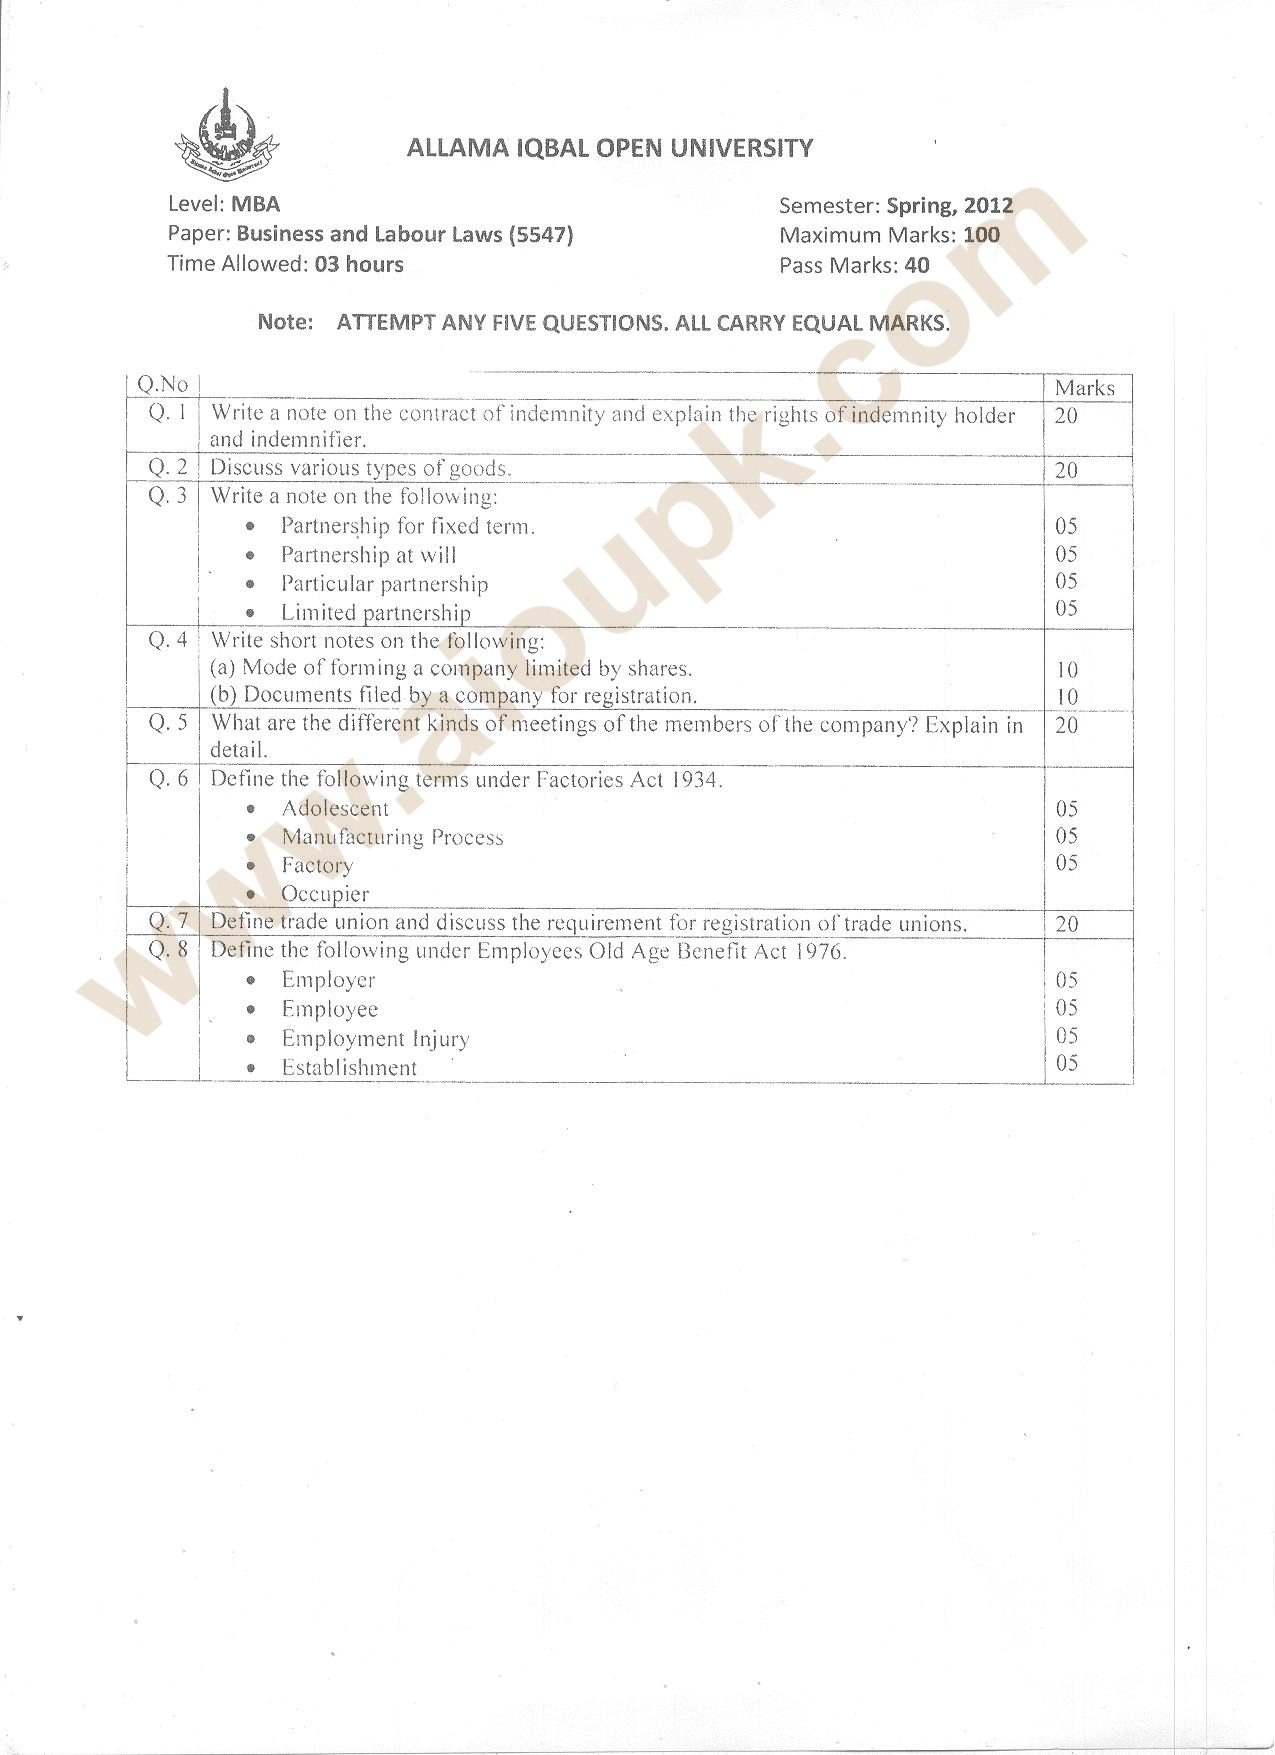 Business and labour Laws Code 5547, Level MBA, AIOU Old Paper